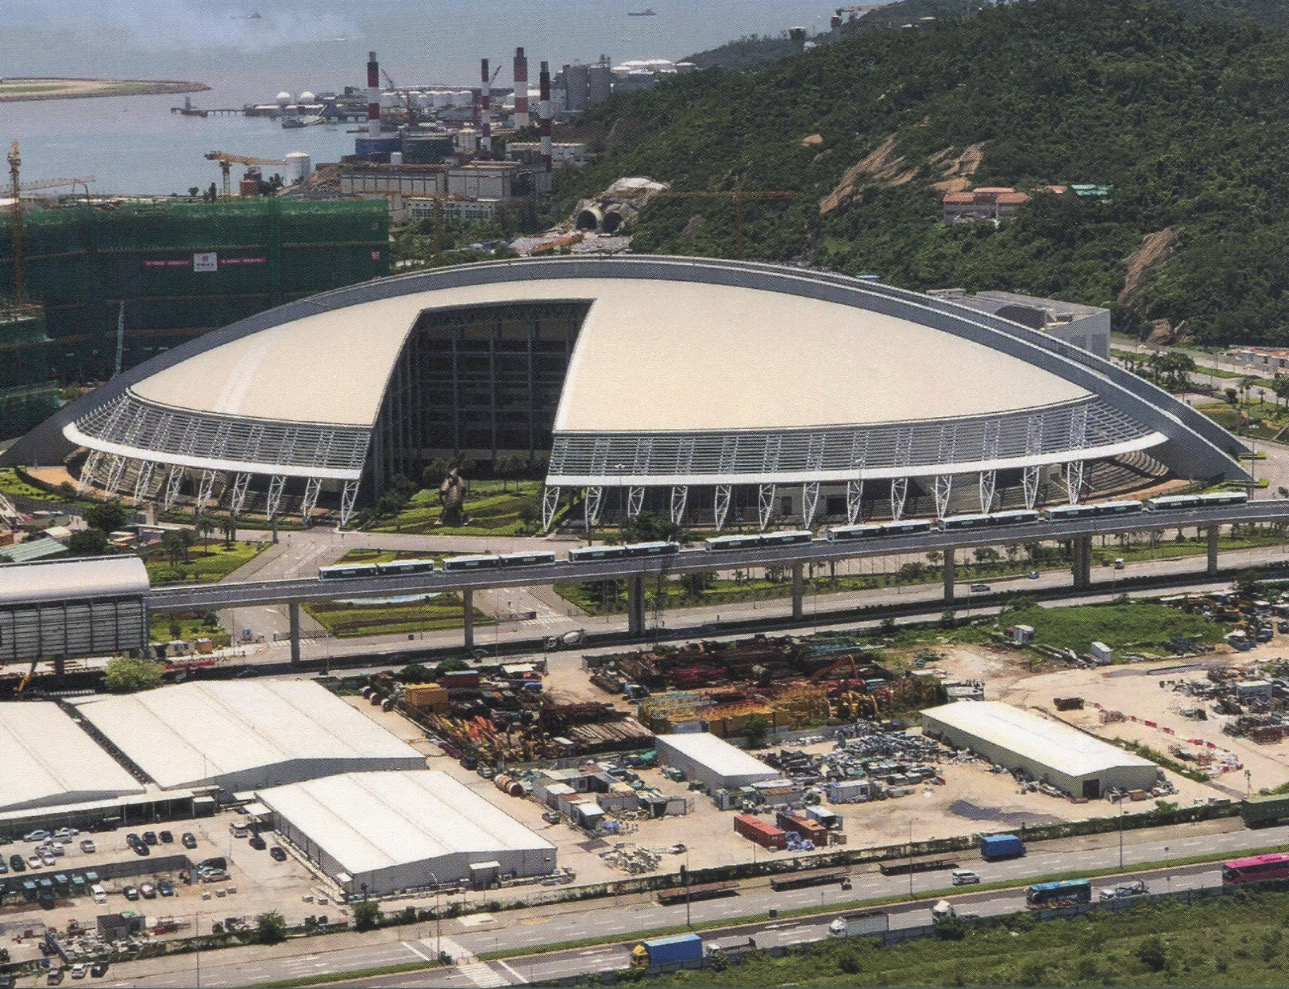 Macau East Asian Games Dome Stadium